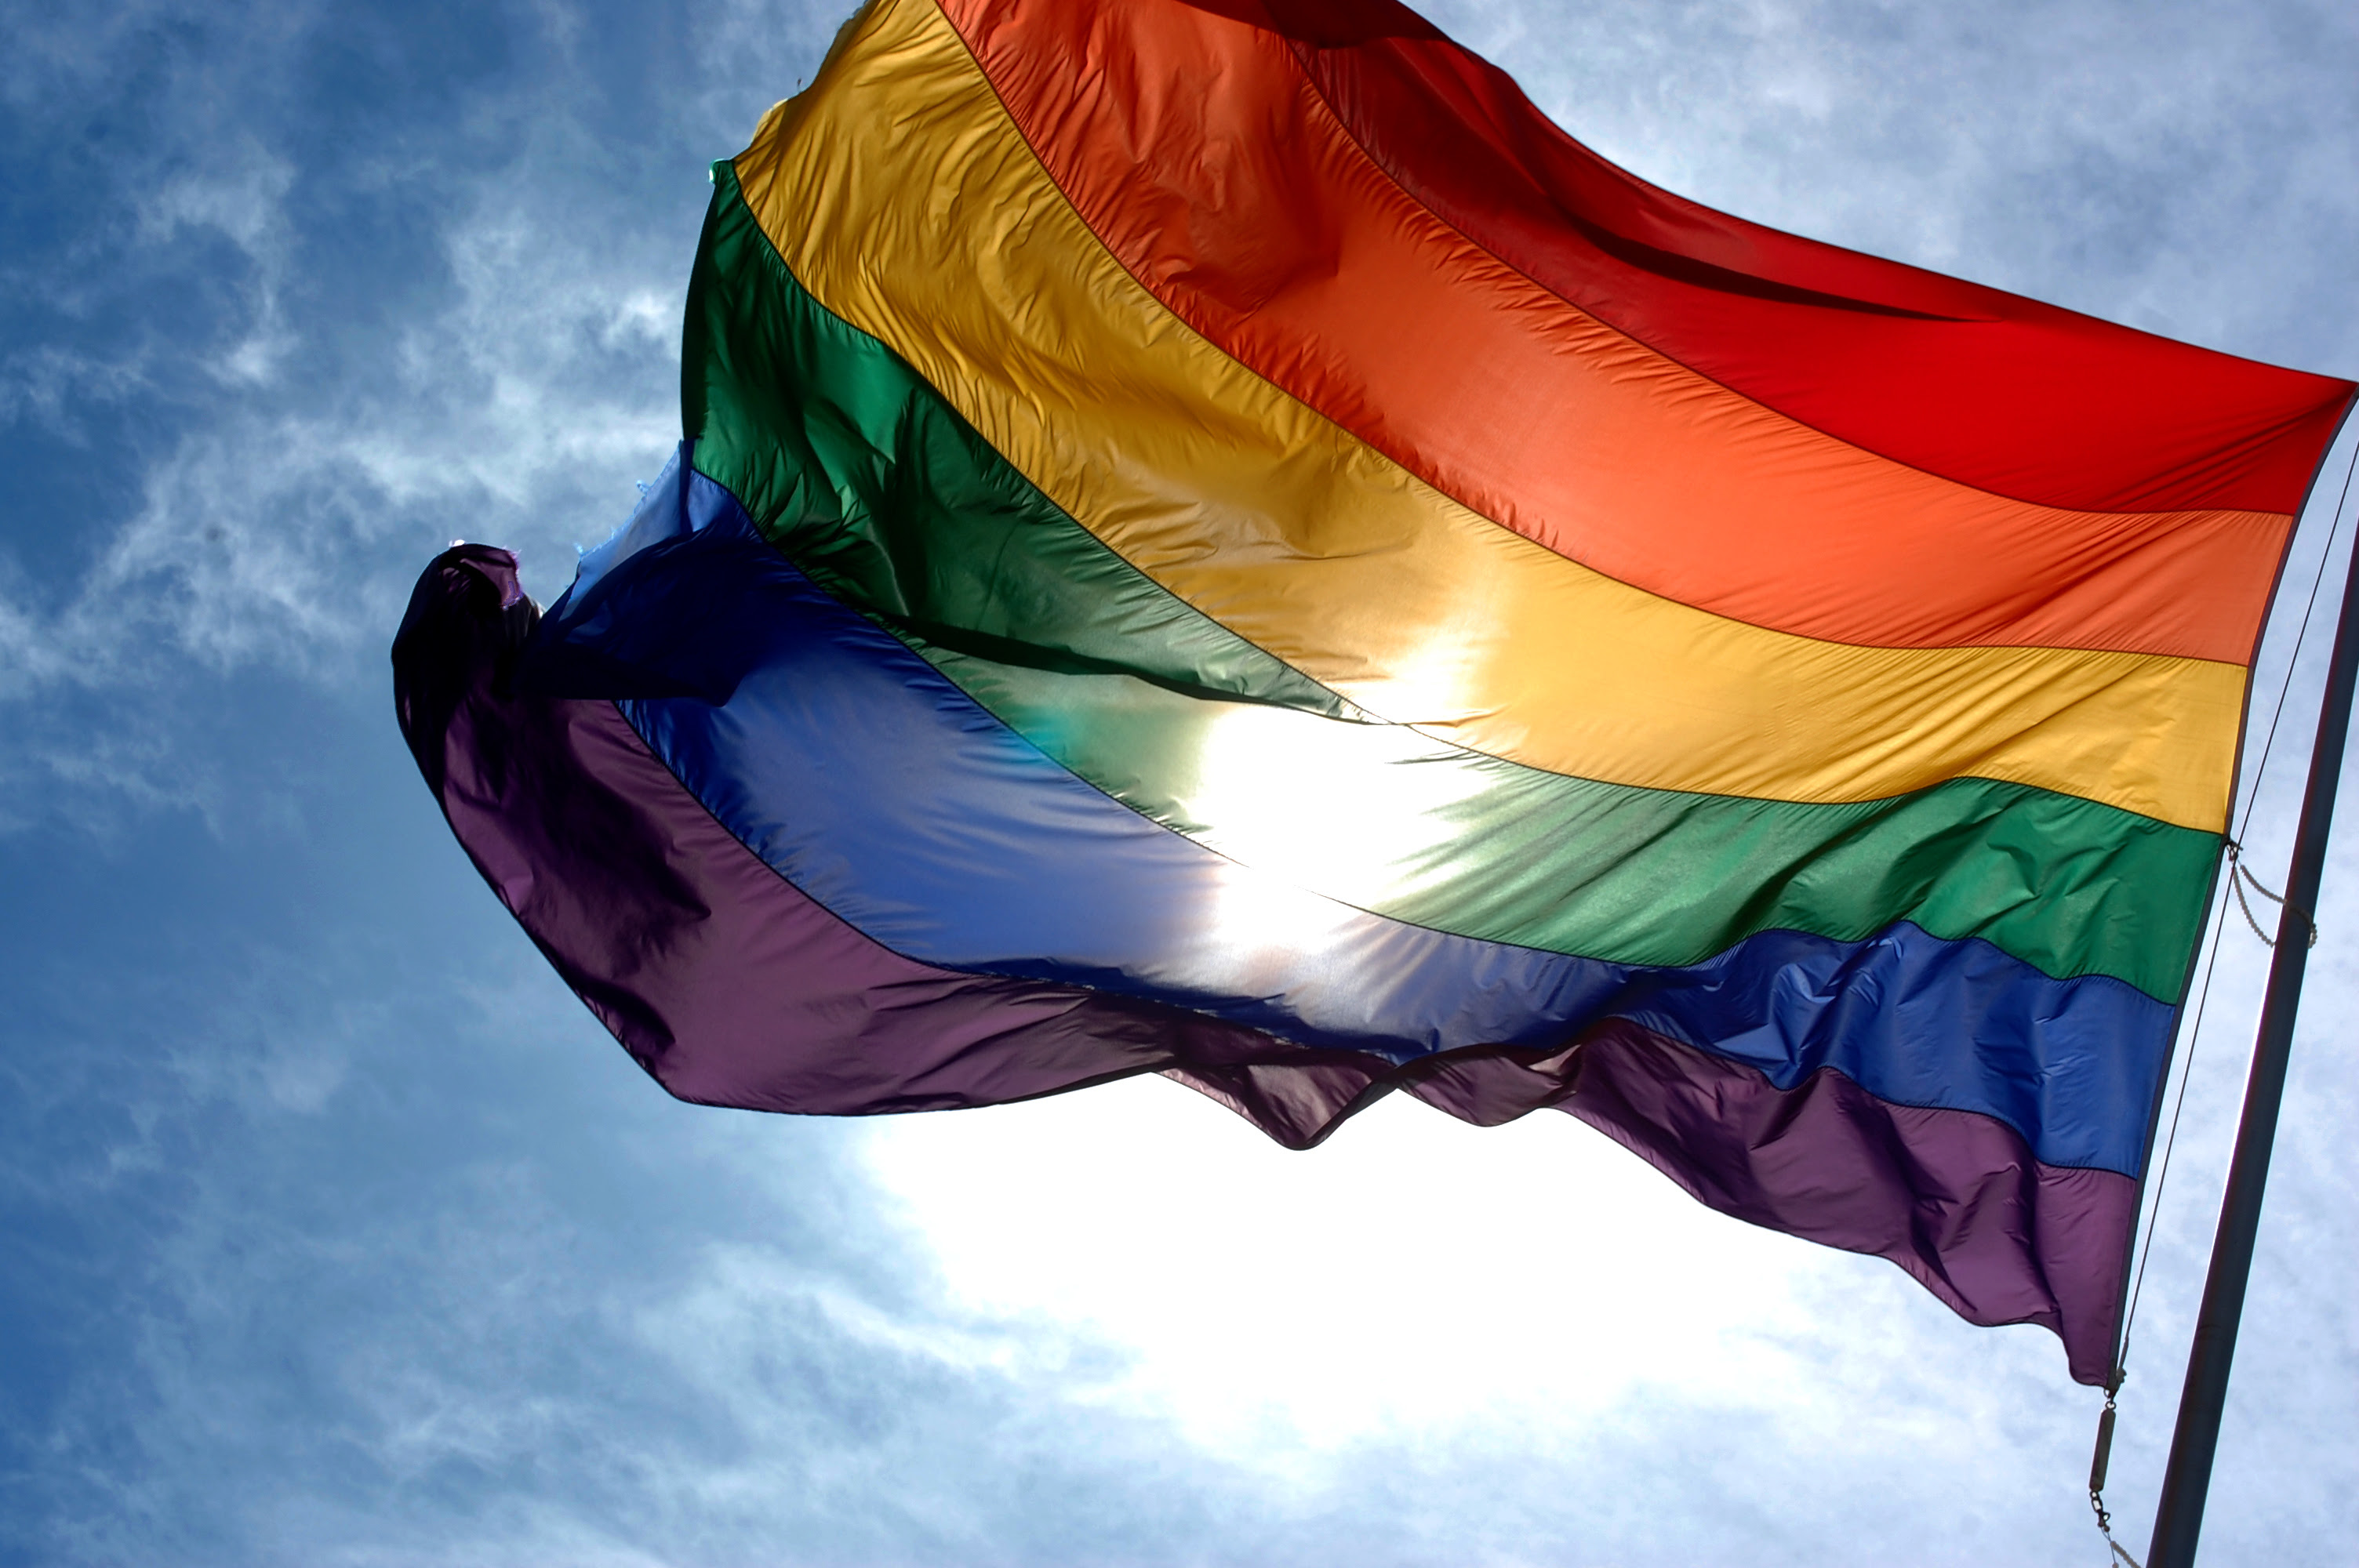 Rainbow flag, freedom flag